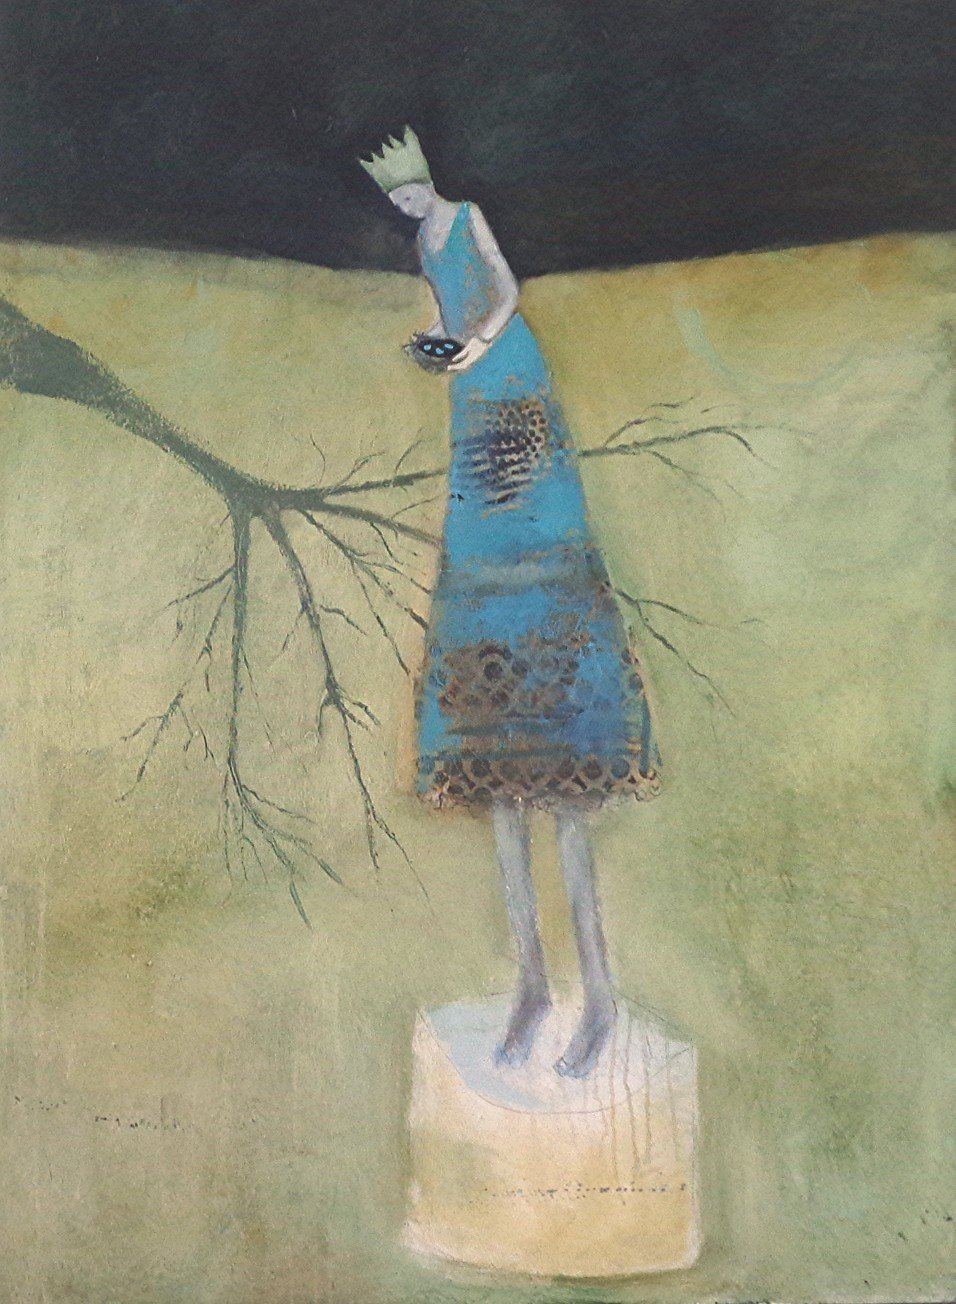 """""""Loss of Habitat"""" by Jeanie Tomanek, Oil and collage on canvas, 48x36 inches"""